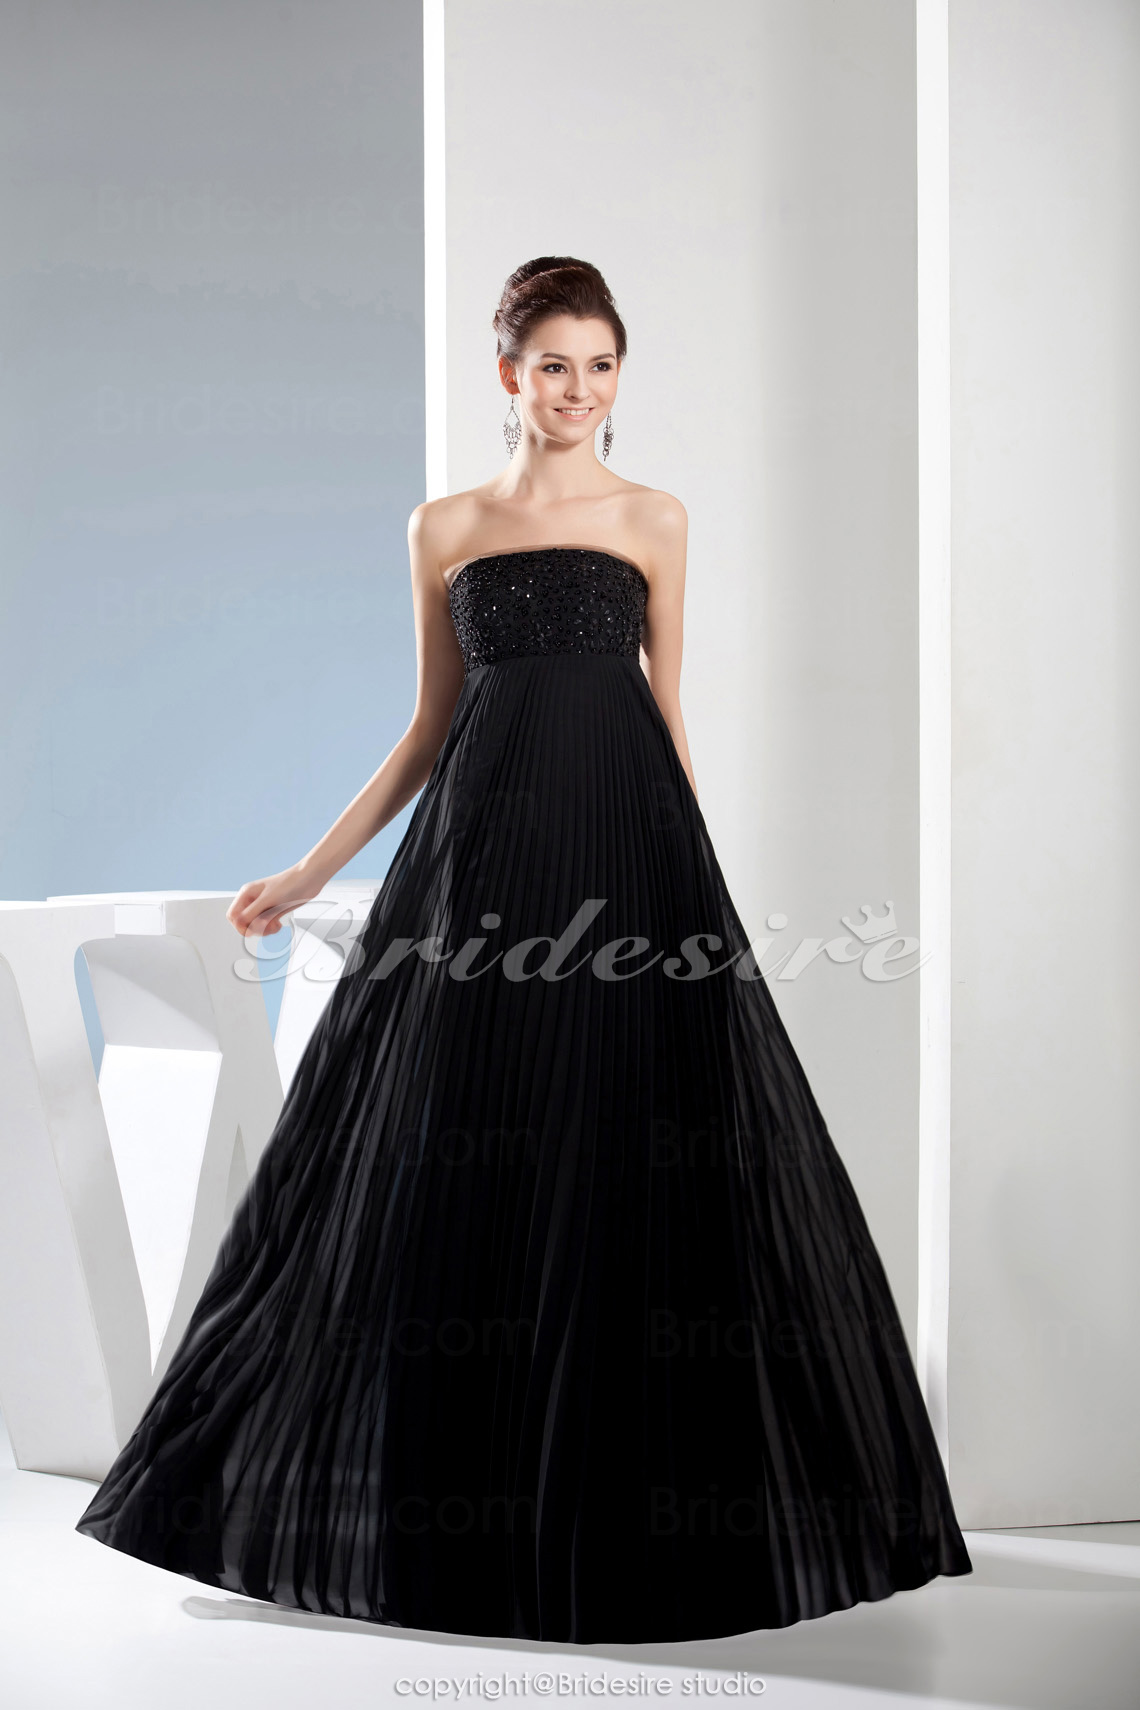 A-line Strapless Floor-length Sleeveless Tulle Dress